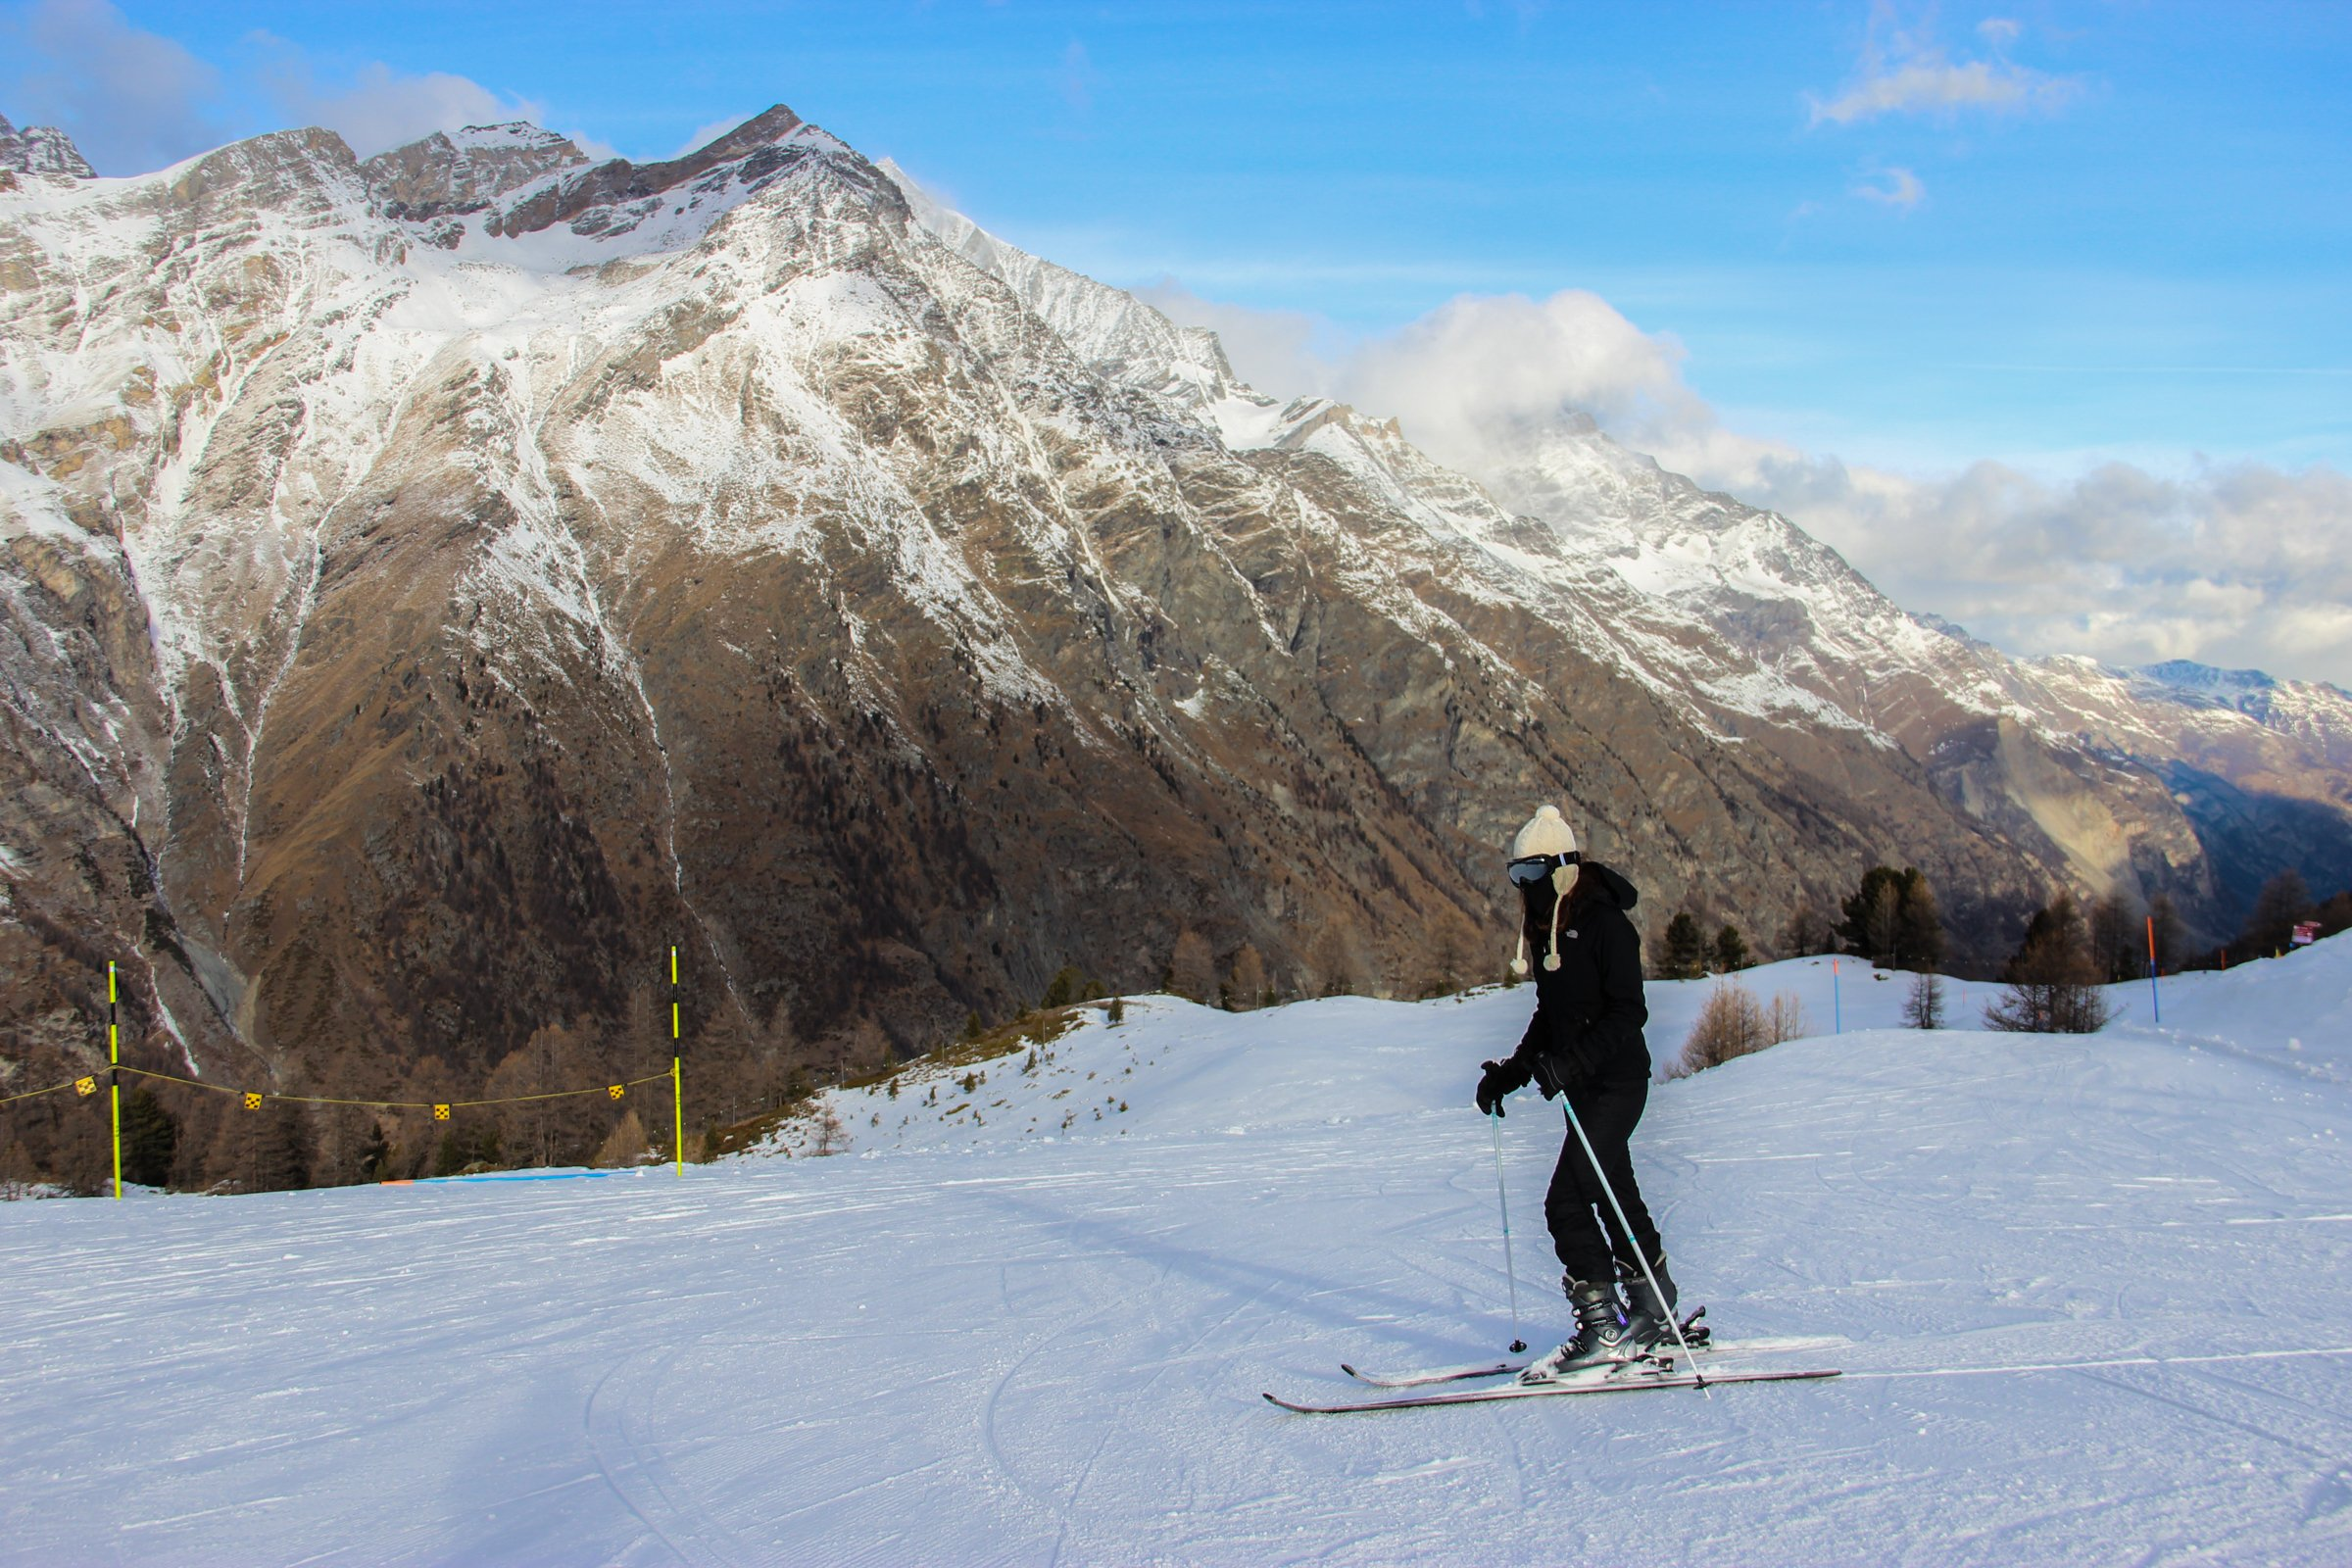 Skier in Front of Mountain Range